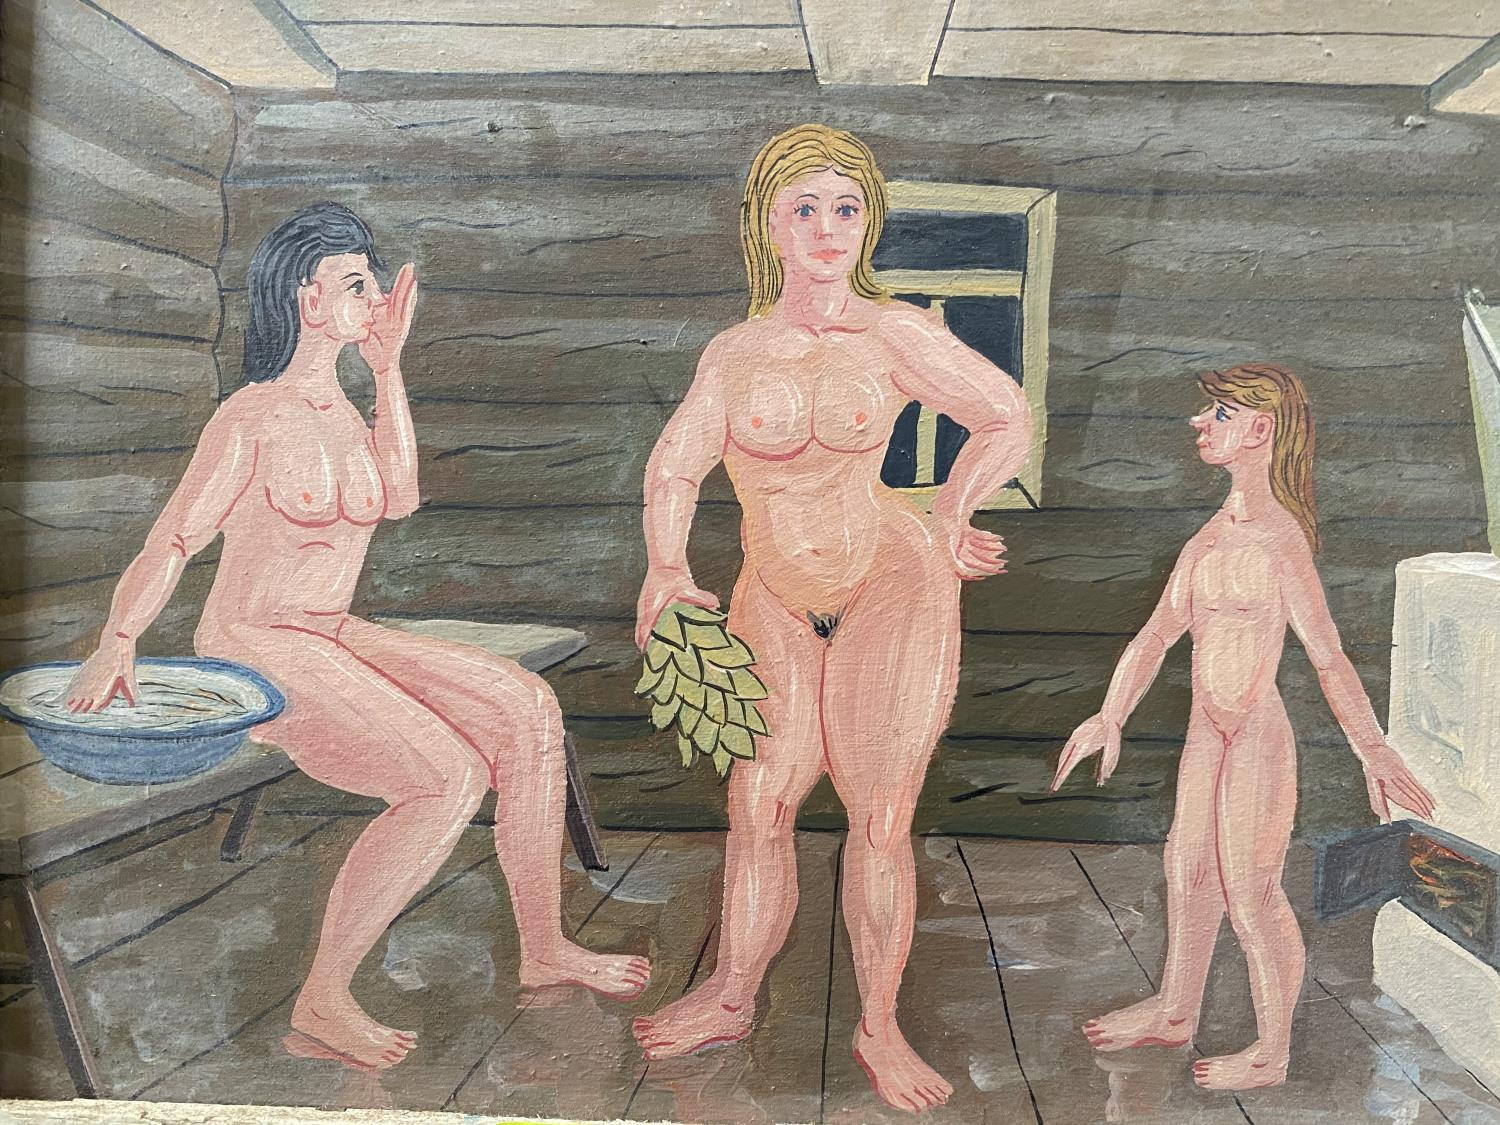 E.G. Galkin - In the Banya (bath house), oil cartoon, oil on canvass & board, inscribed on reverse - Image 2 of 2